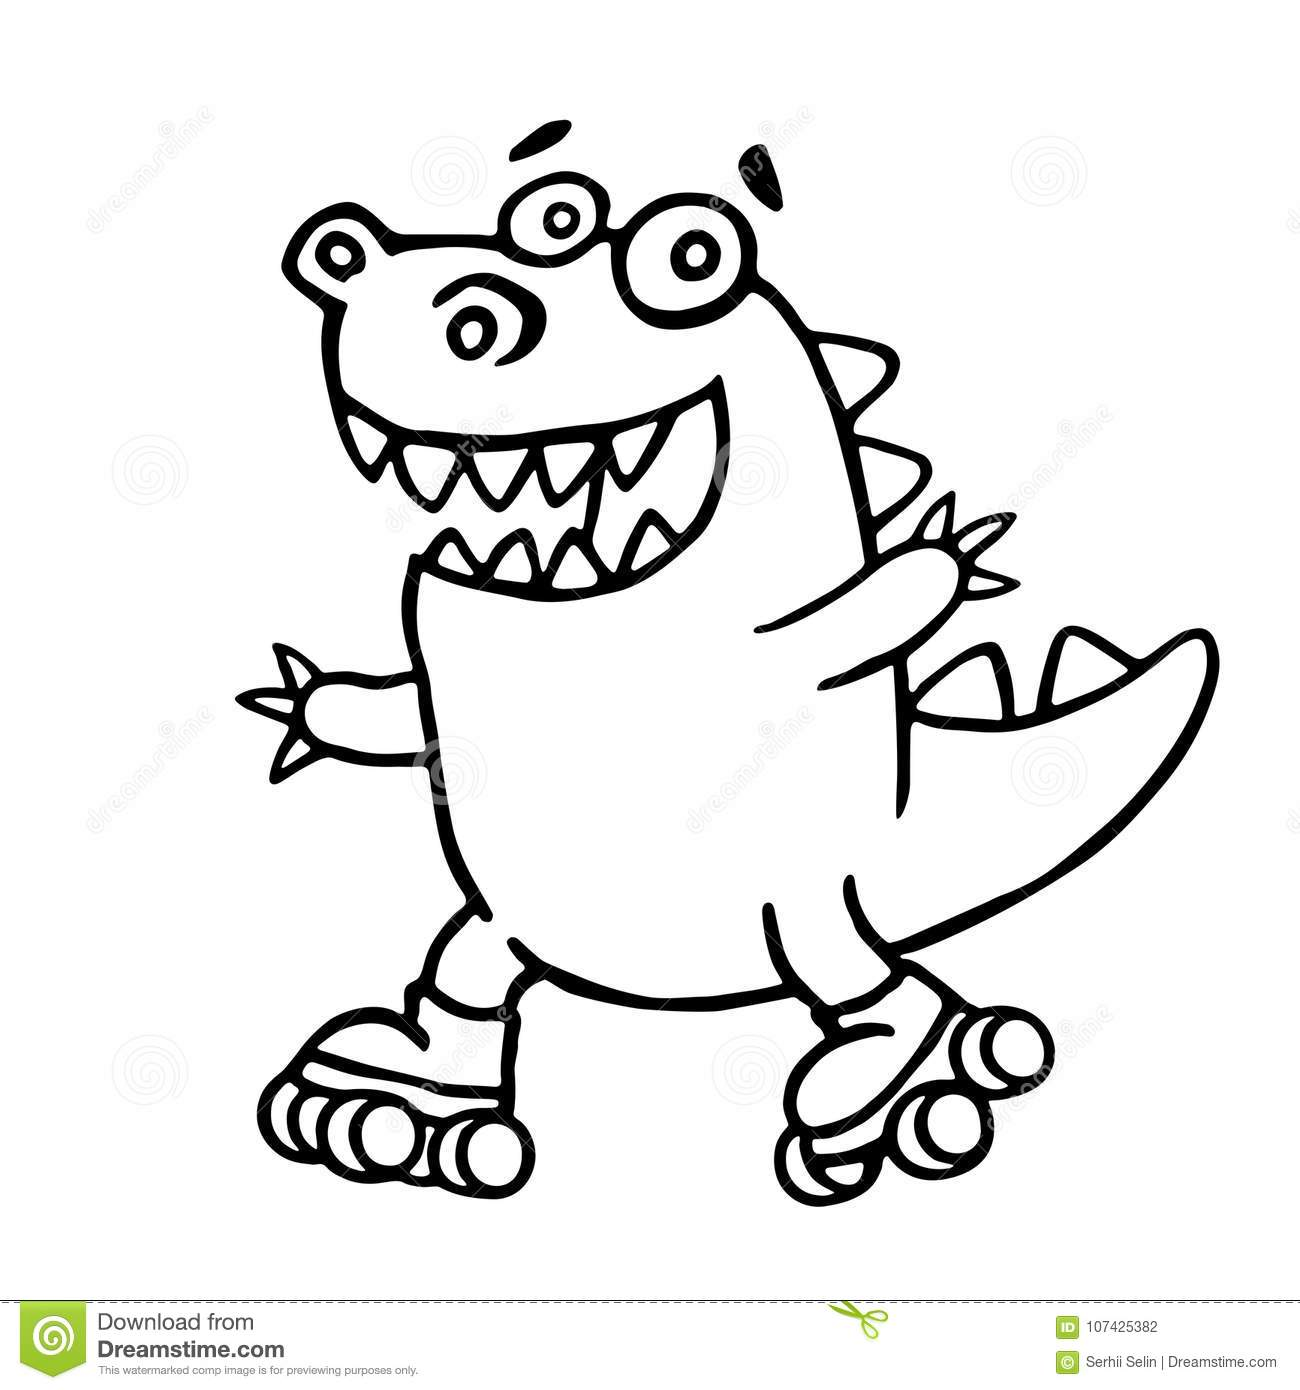 dino racing on rollerblades in the park vector illustration stock rh dreamstime com Tree Frog Vector Frog Prince